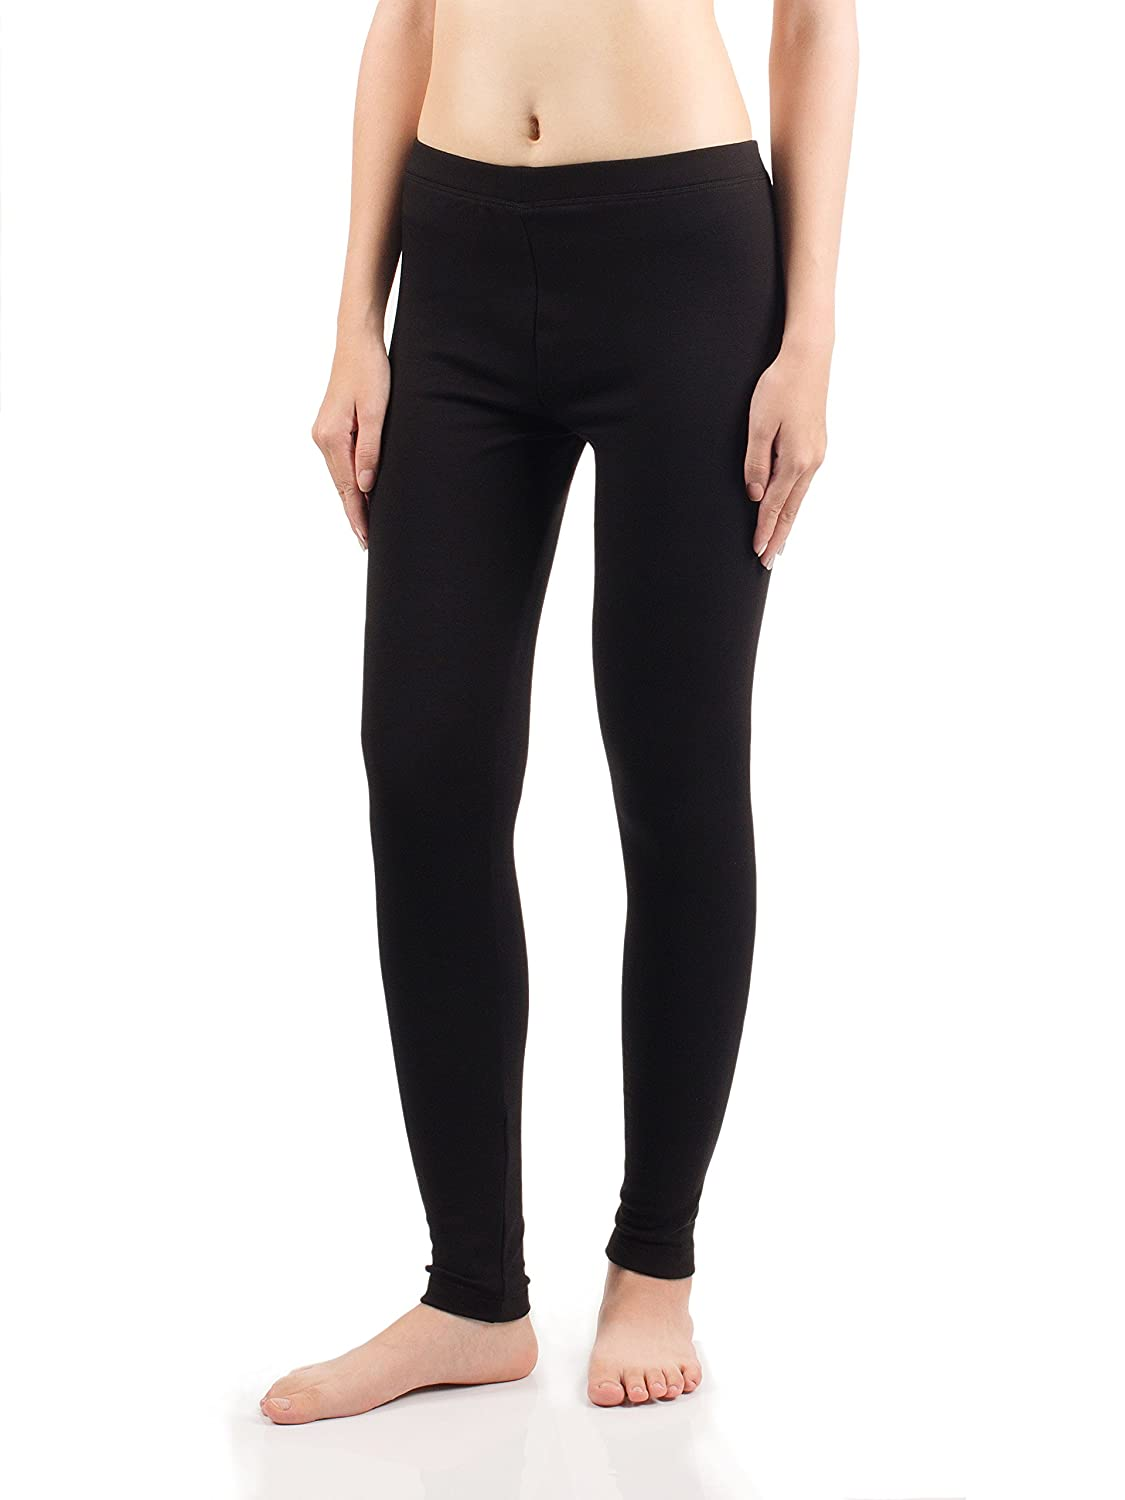 David Archy Womens Fleece Lined Low Rise Cotton Baselayer Wicking Leggings Thermal Bottom